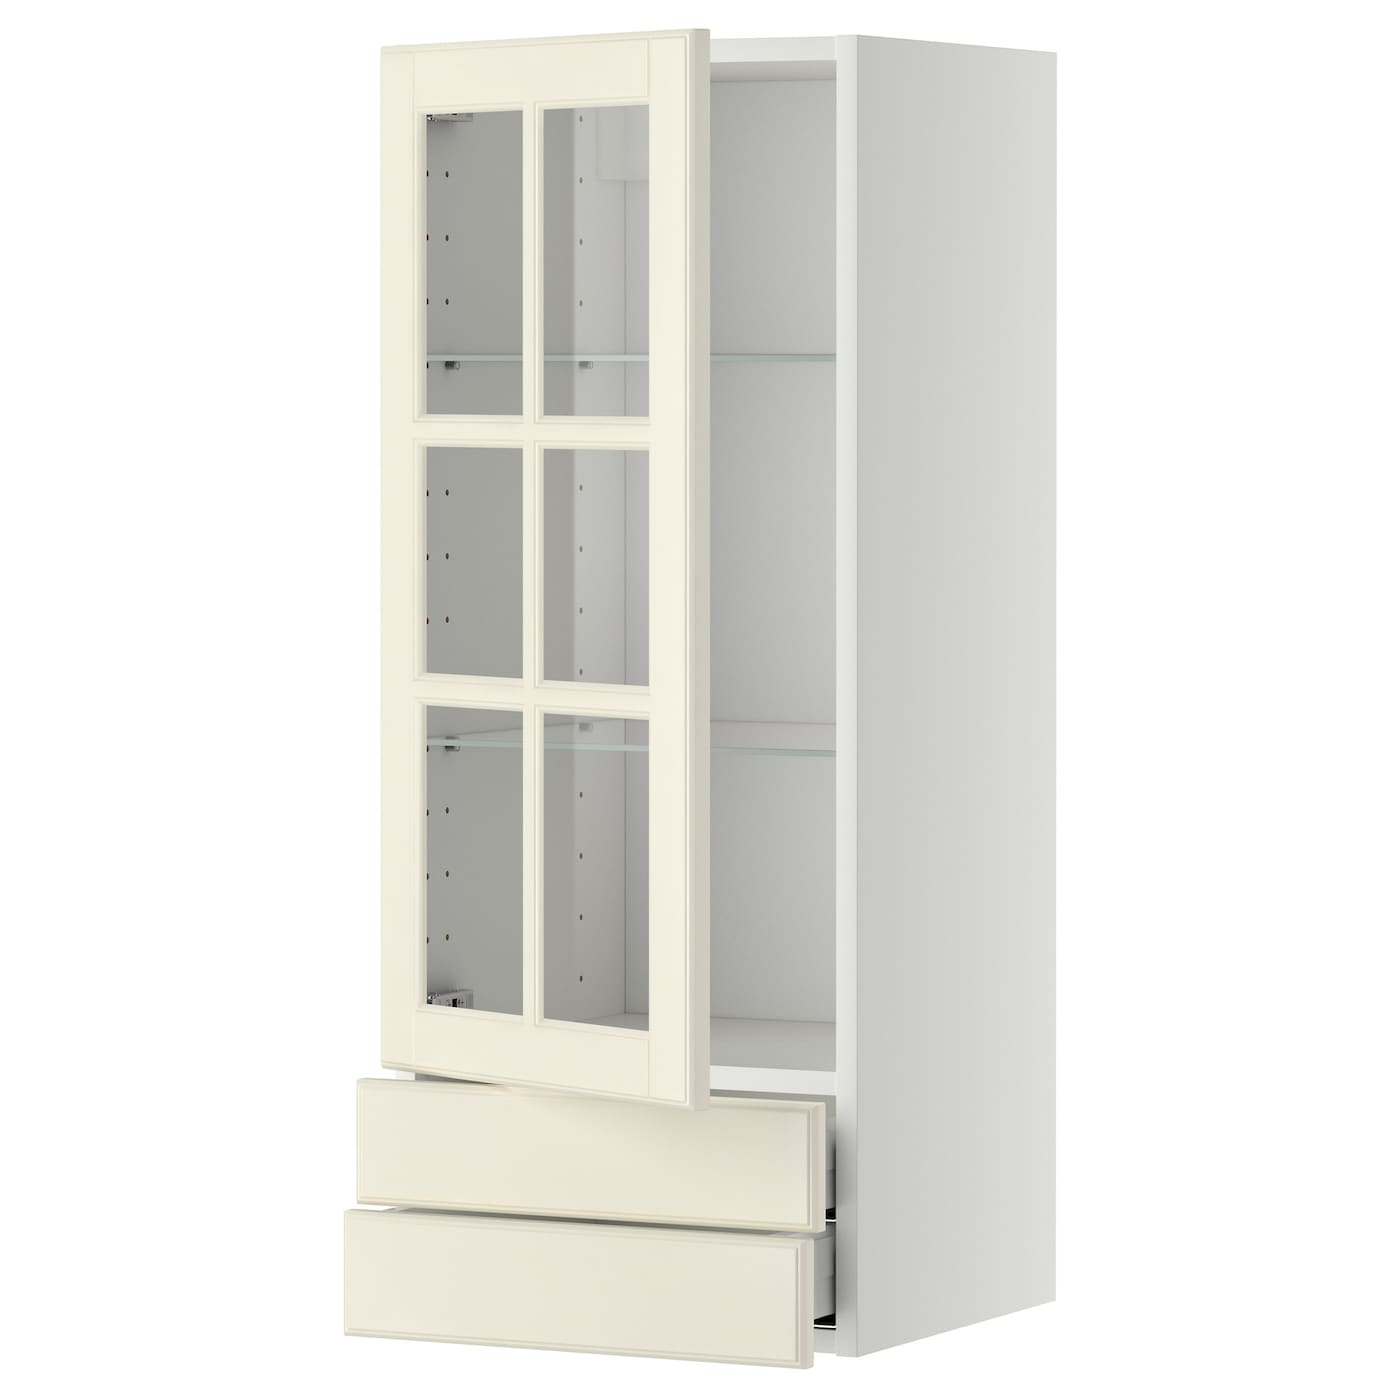 Metod maximera wall cabinet w glass door 2 drawers white for Ikea glass door wall cabinet